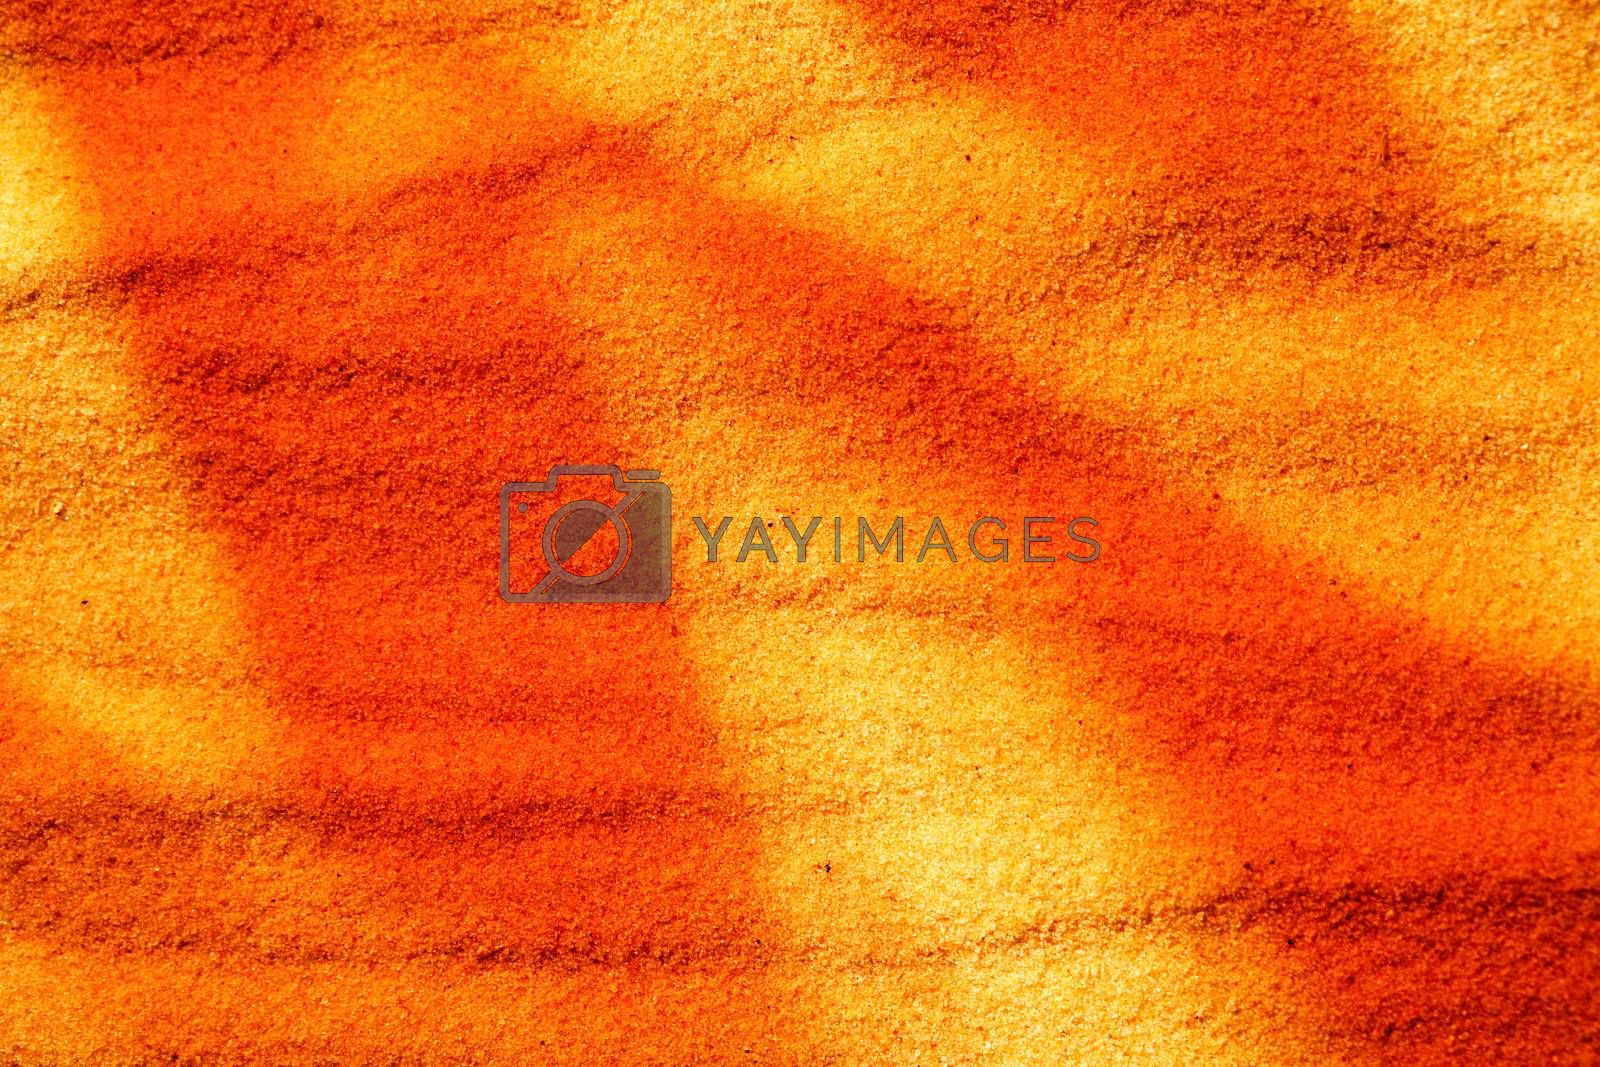 Royalty free image of Abstract Sand Background by kvkirillov